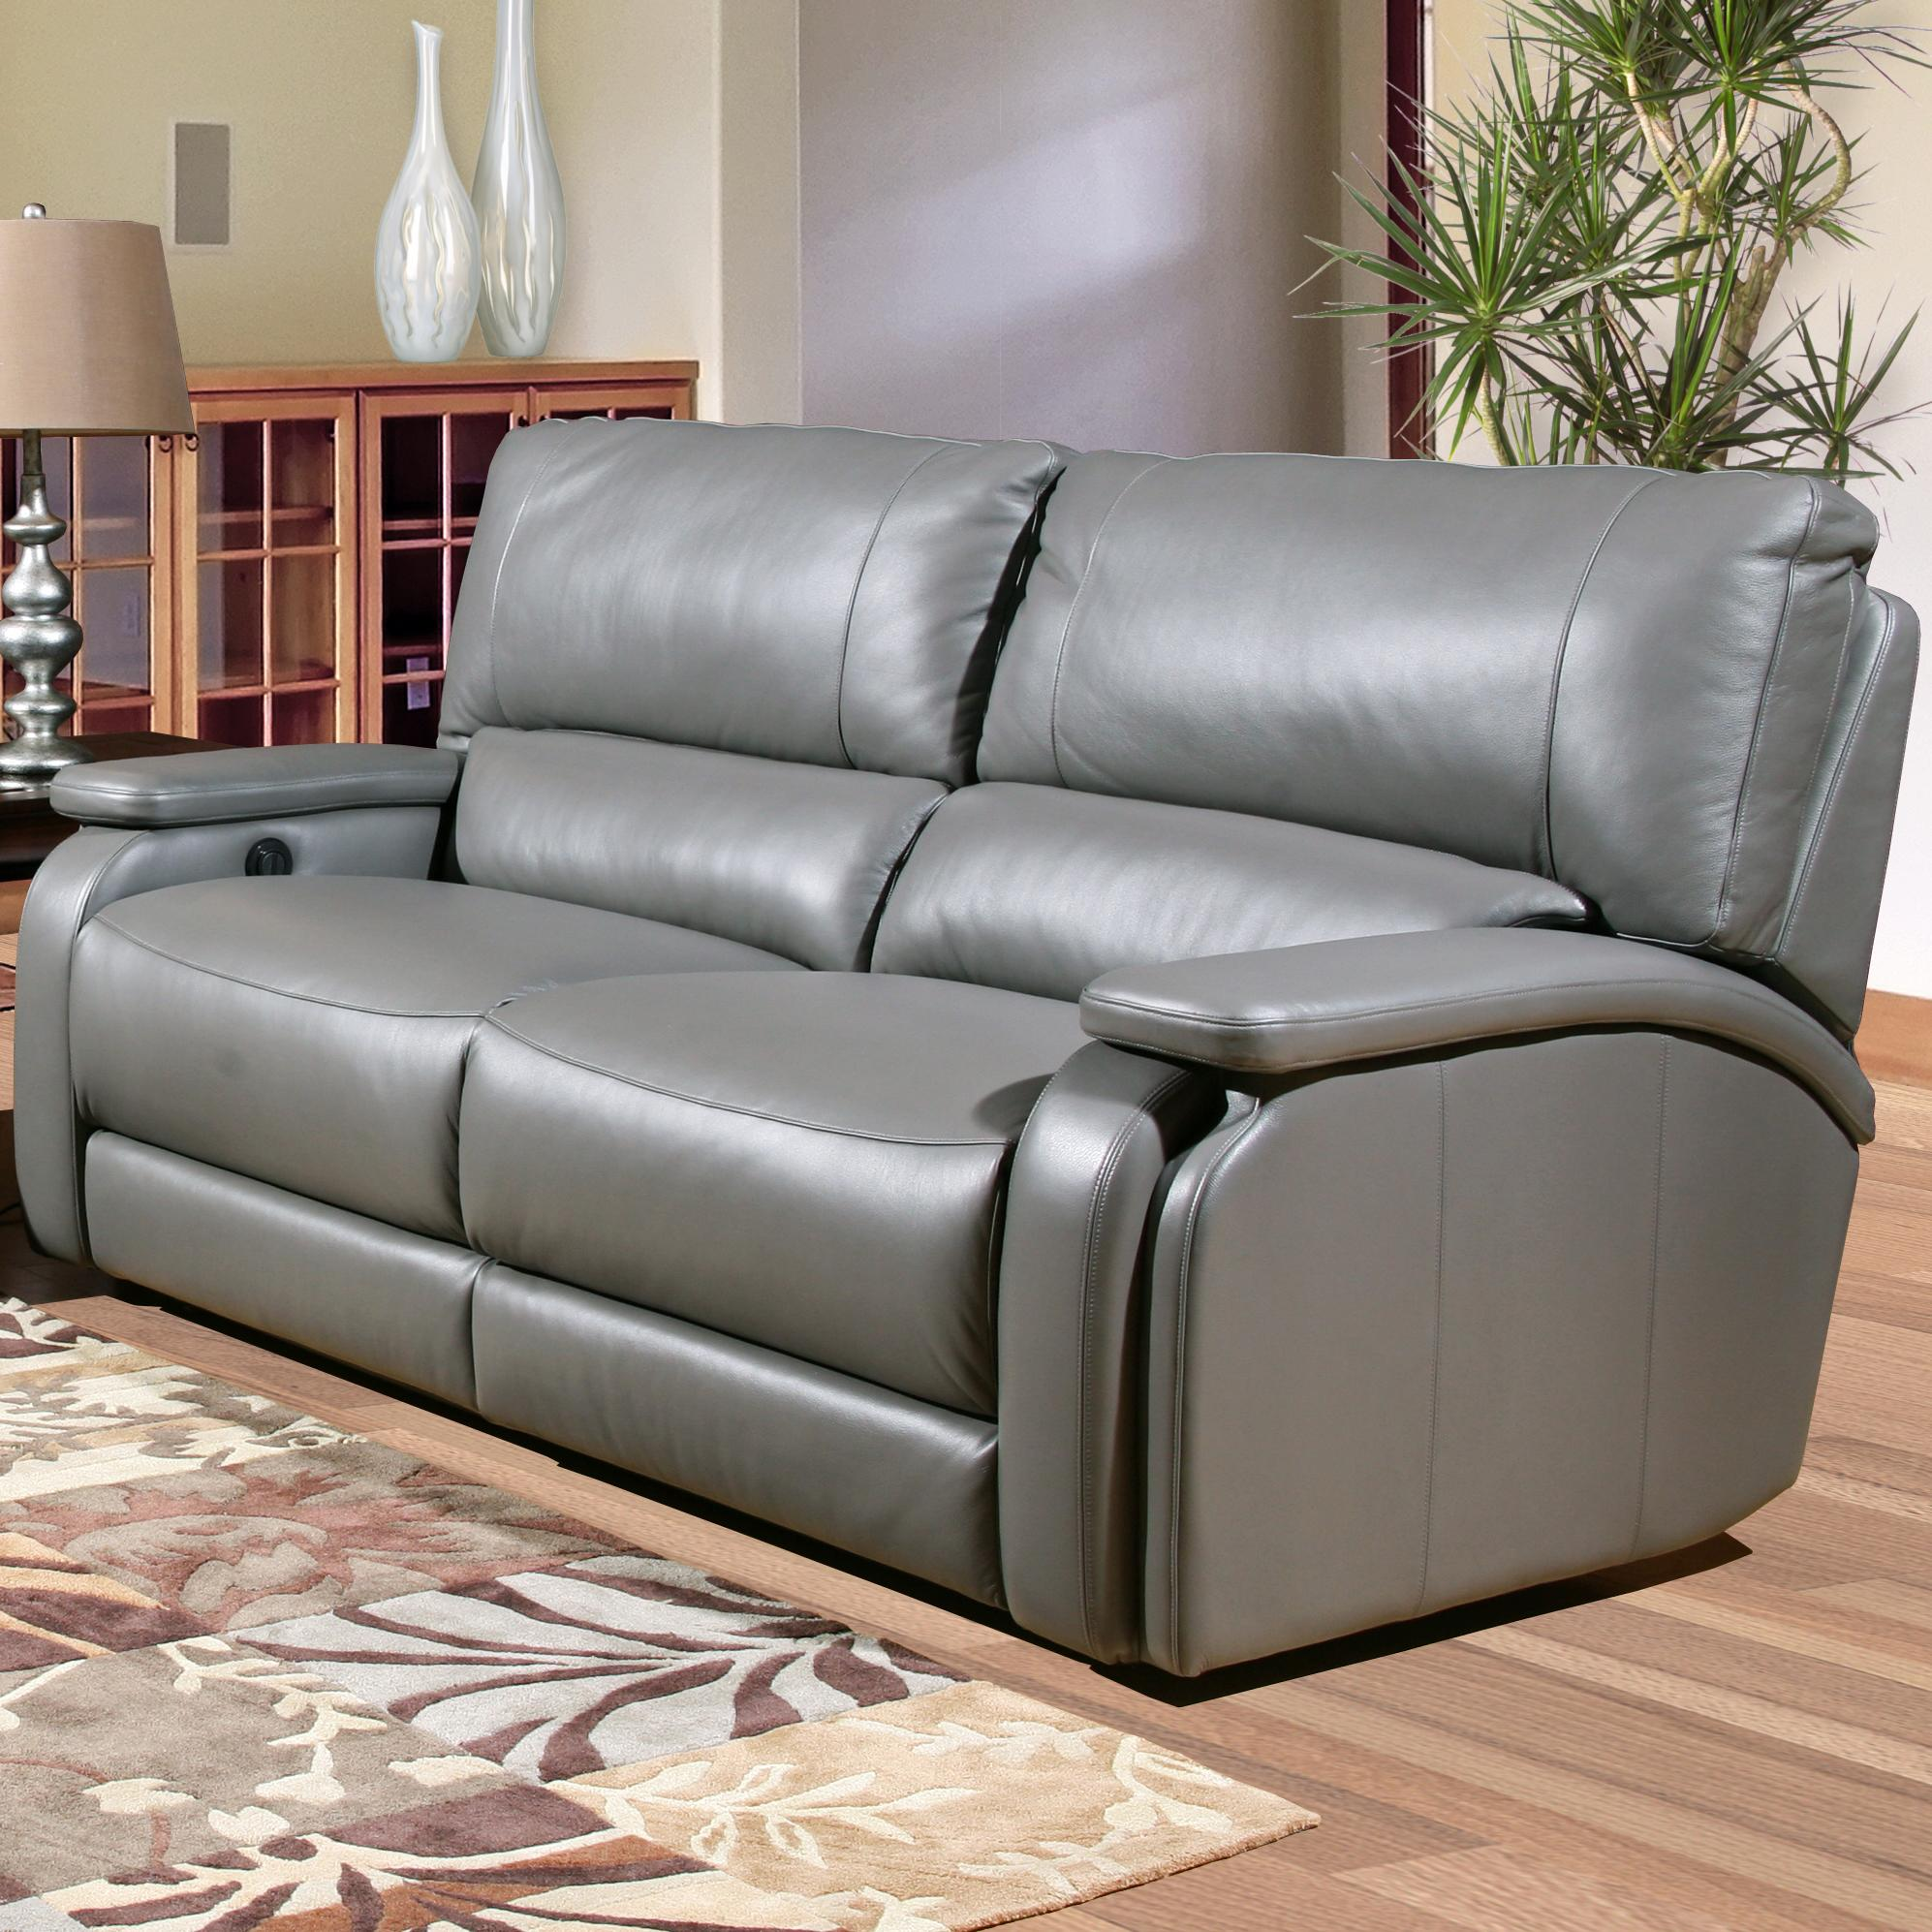 Parker Living Grisham Casual Power Reclining Sofa - Item Number: MGRI-832P-HE